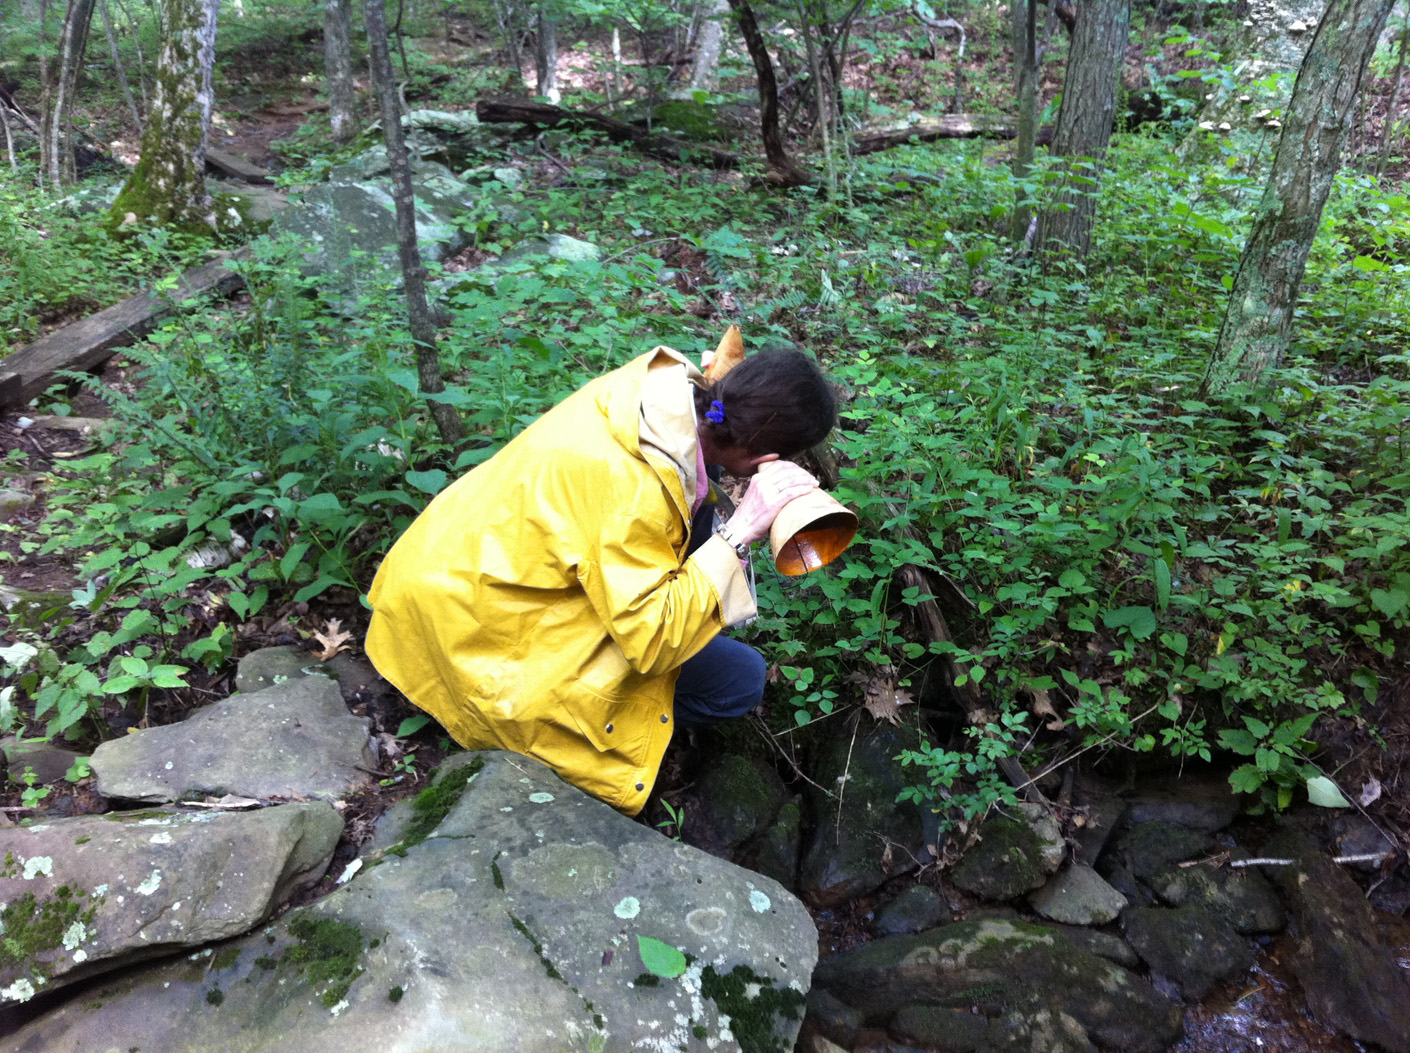 Sight and Sound Walks, collaboration with Robert Carl, listener with trumpet at Stony Creek, Blue Ridge Mountains, VA